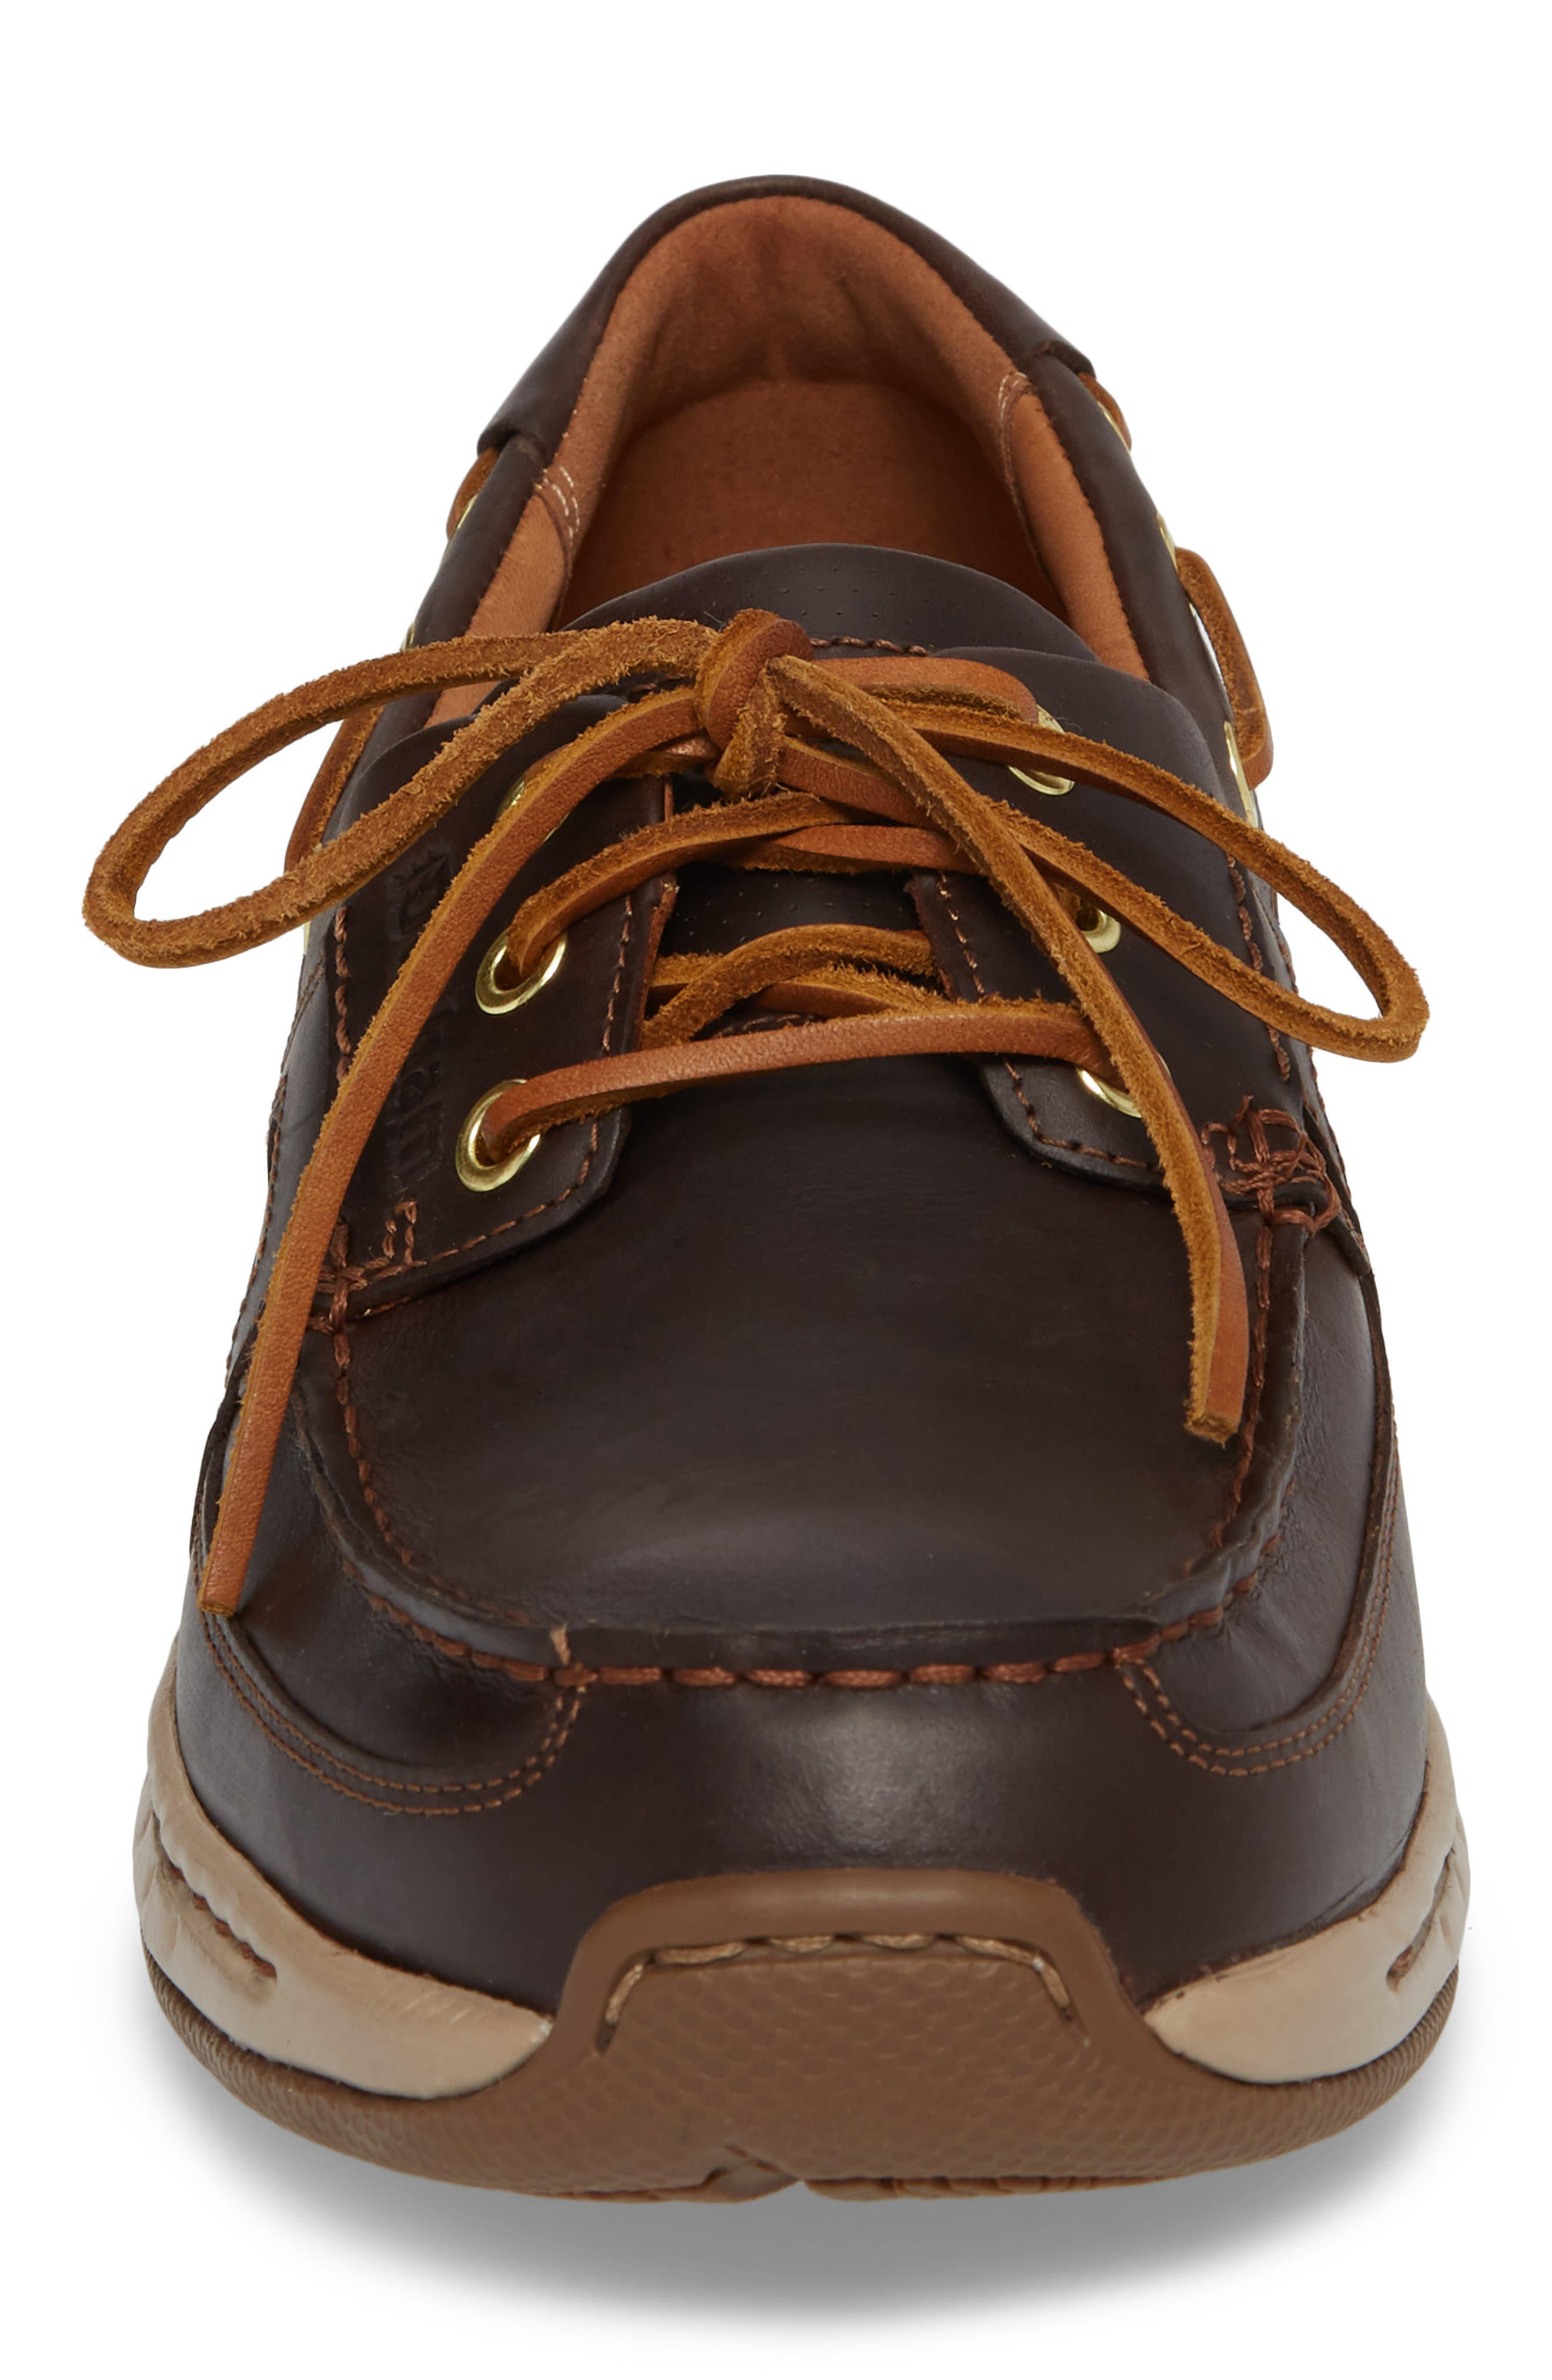 DUNHAM, LTD Water Resistant Boat Shoe, Alternate thumbnail 4, color, TAN LEATHER